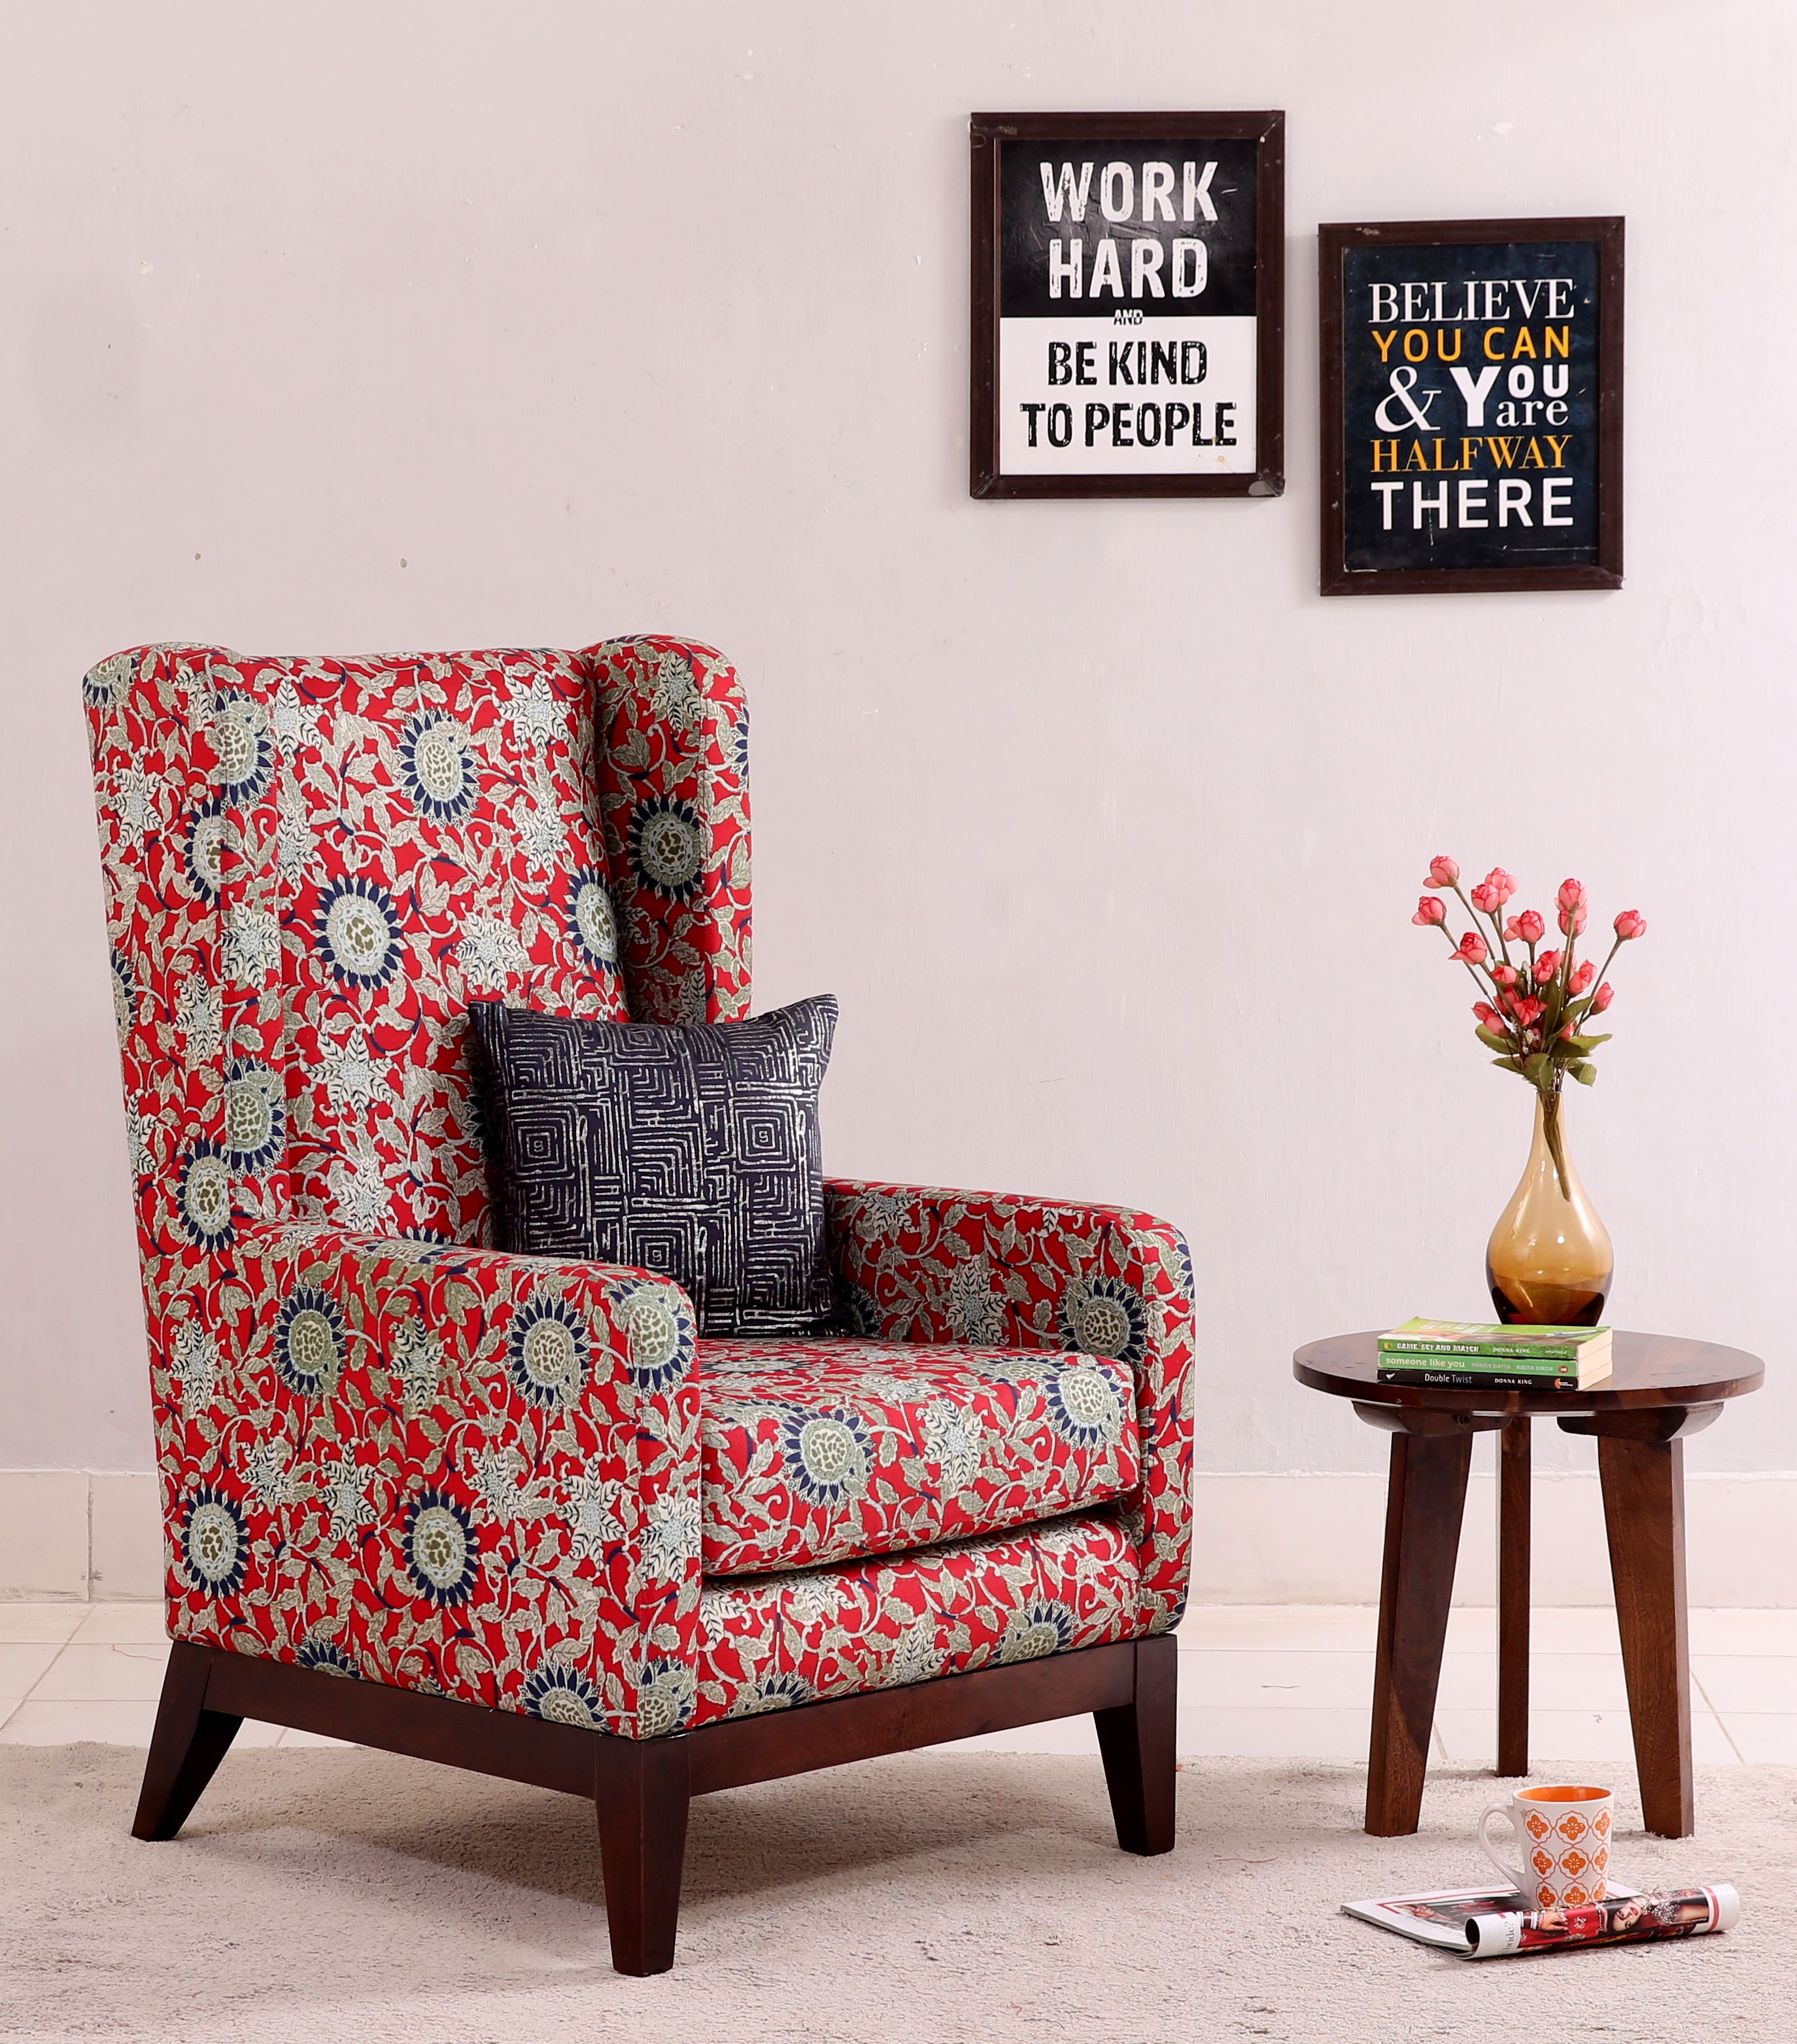 Give Your Room A Royal Look With Classy Lounge Chairs Joanloungechair From Woodenstreet Is An Astounding Furniture Unit To Mak Chair Cool Chairs Chair Design